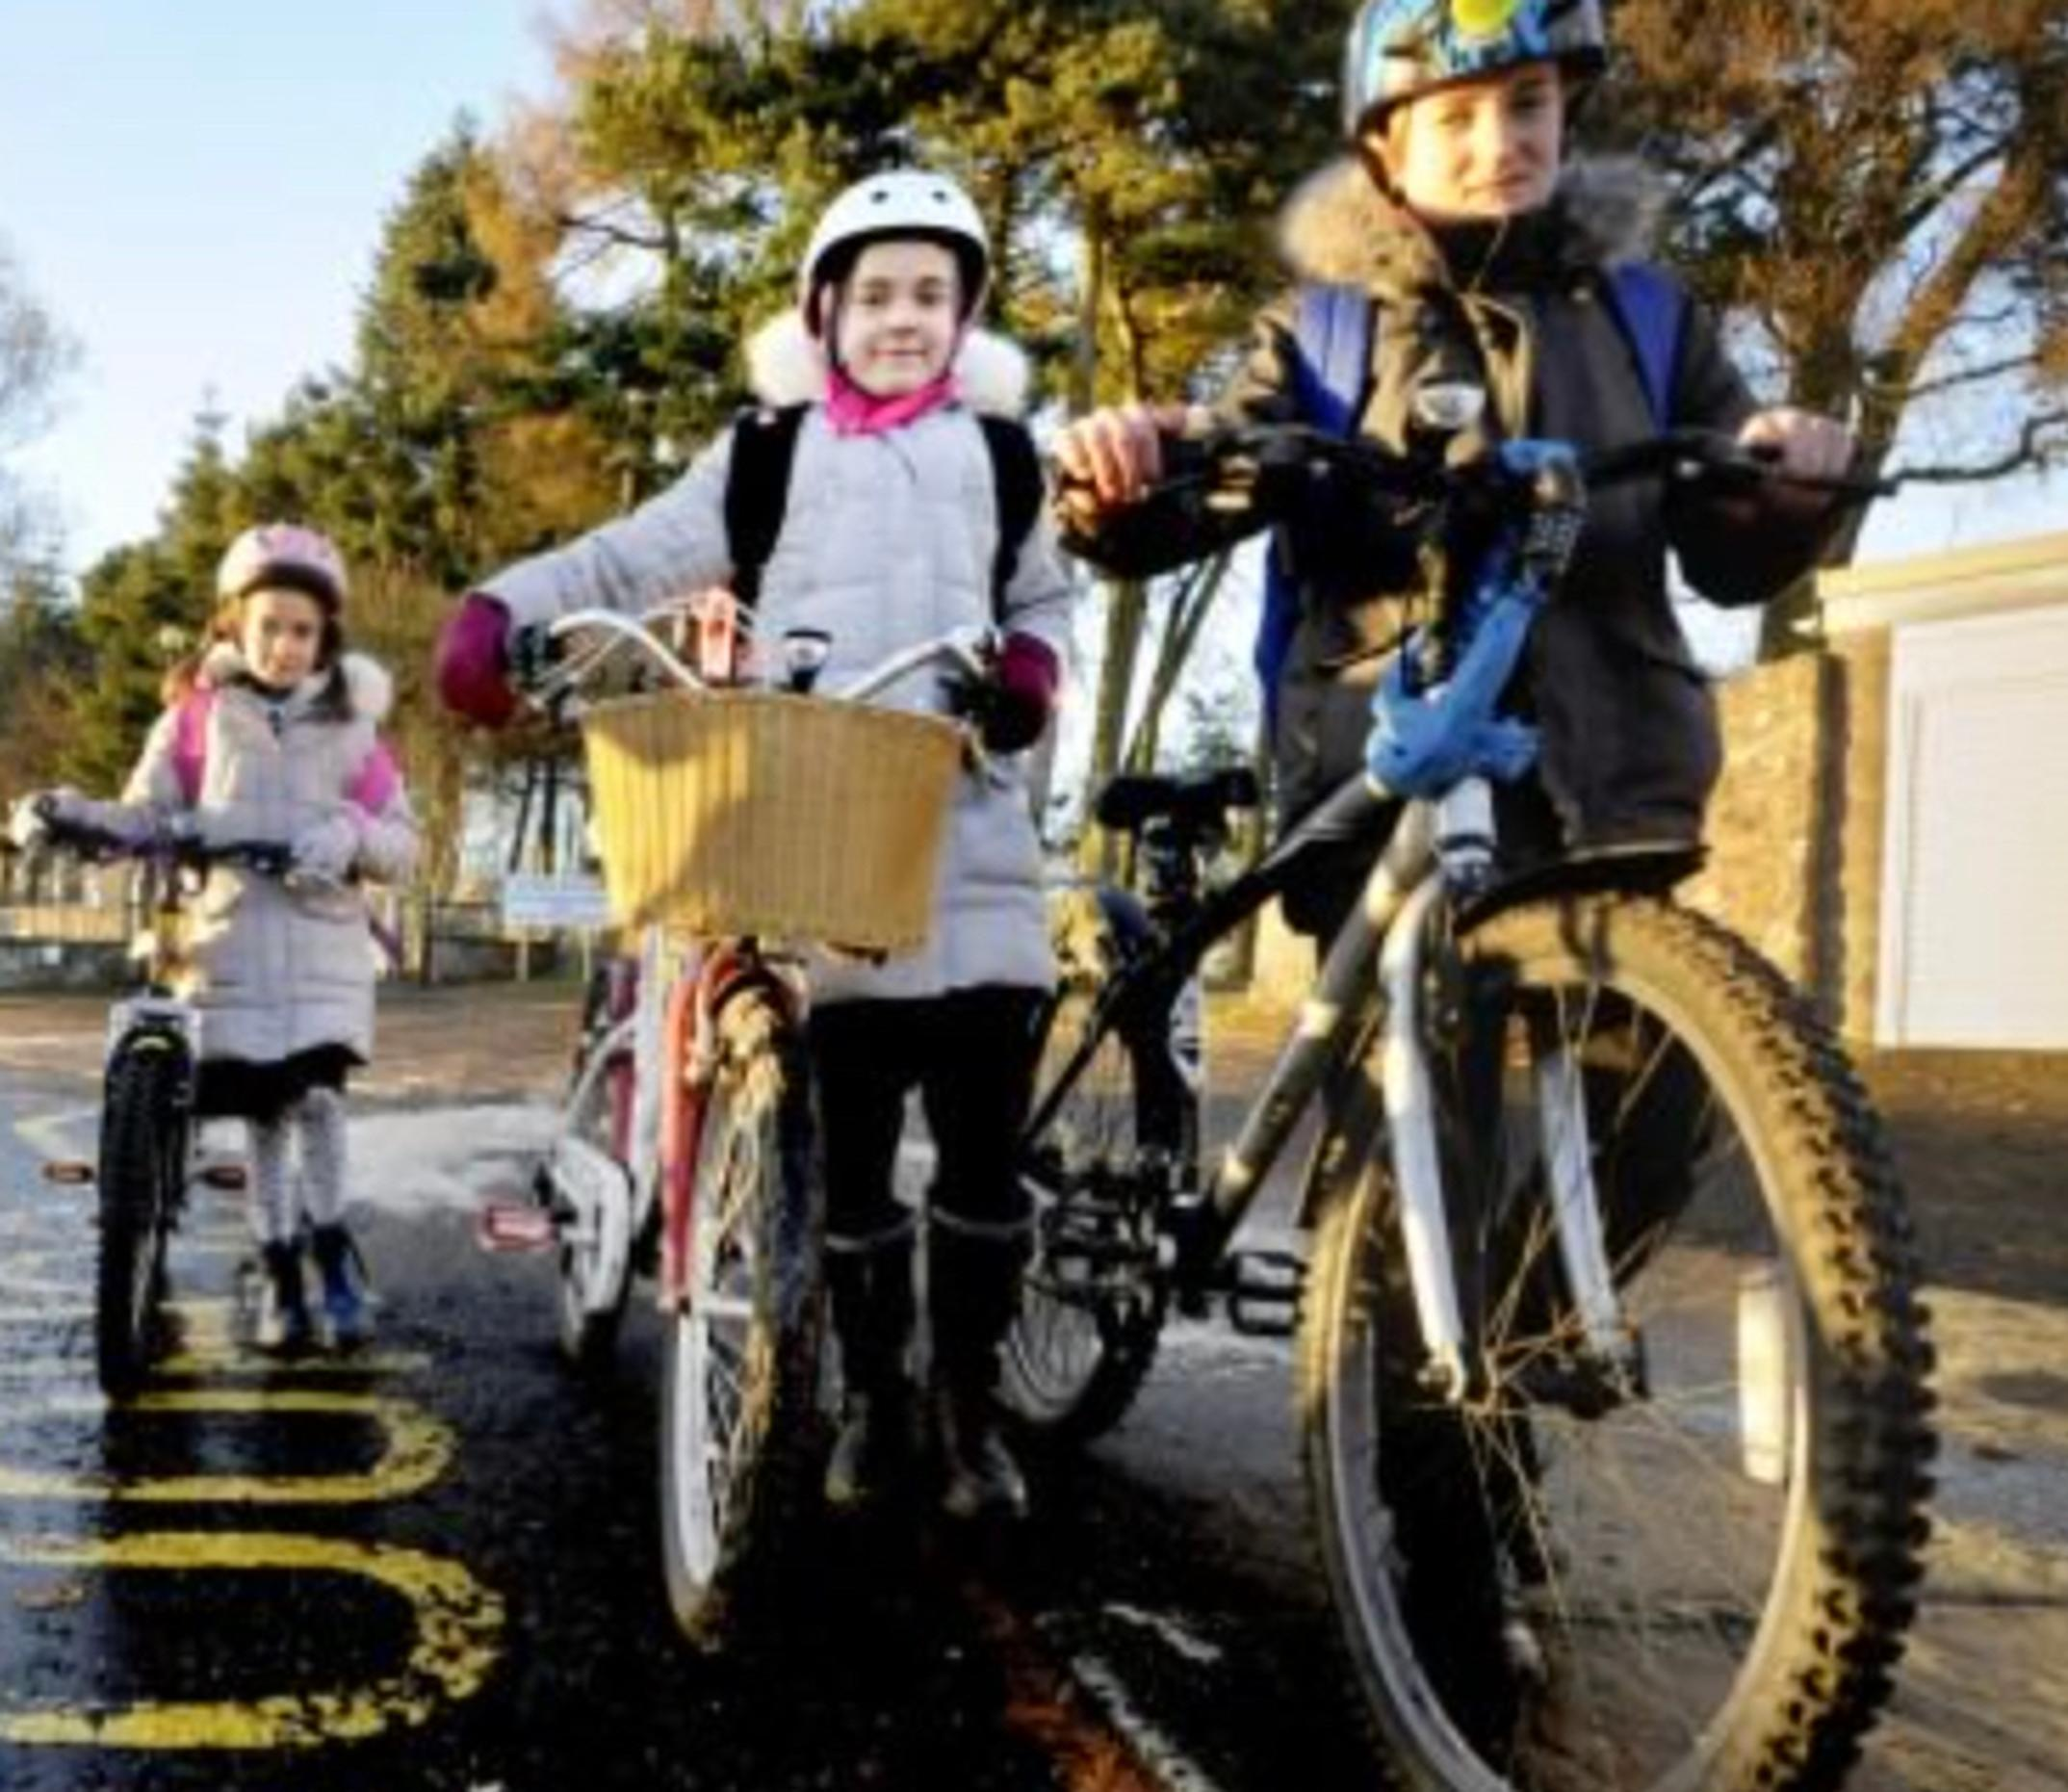 42% of parents say safety fears stops them from allowing their children to actively travel to school